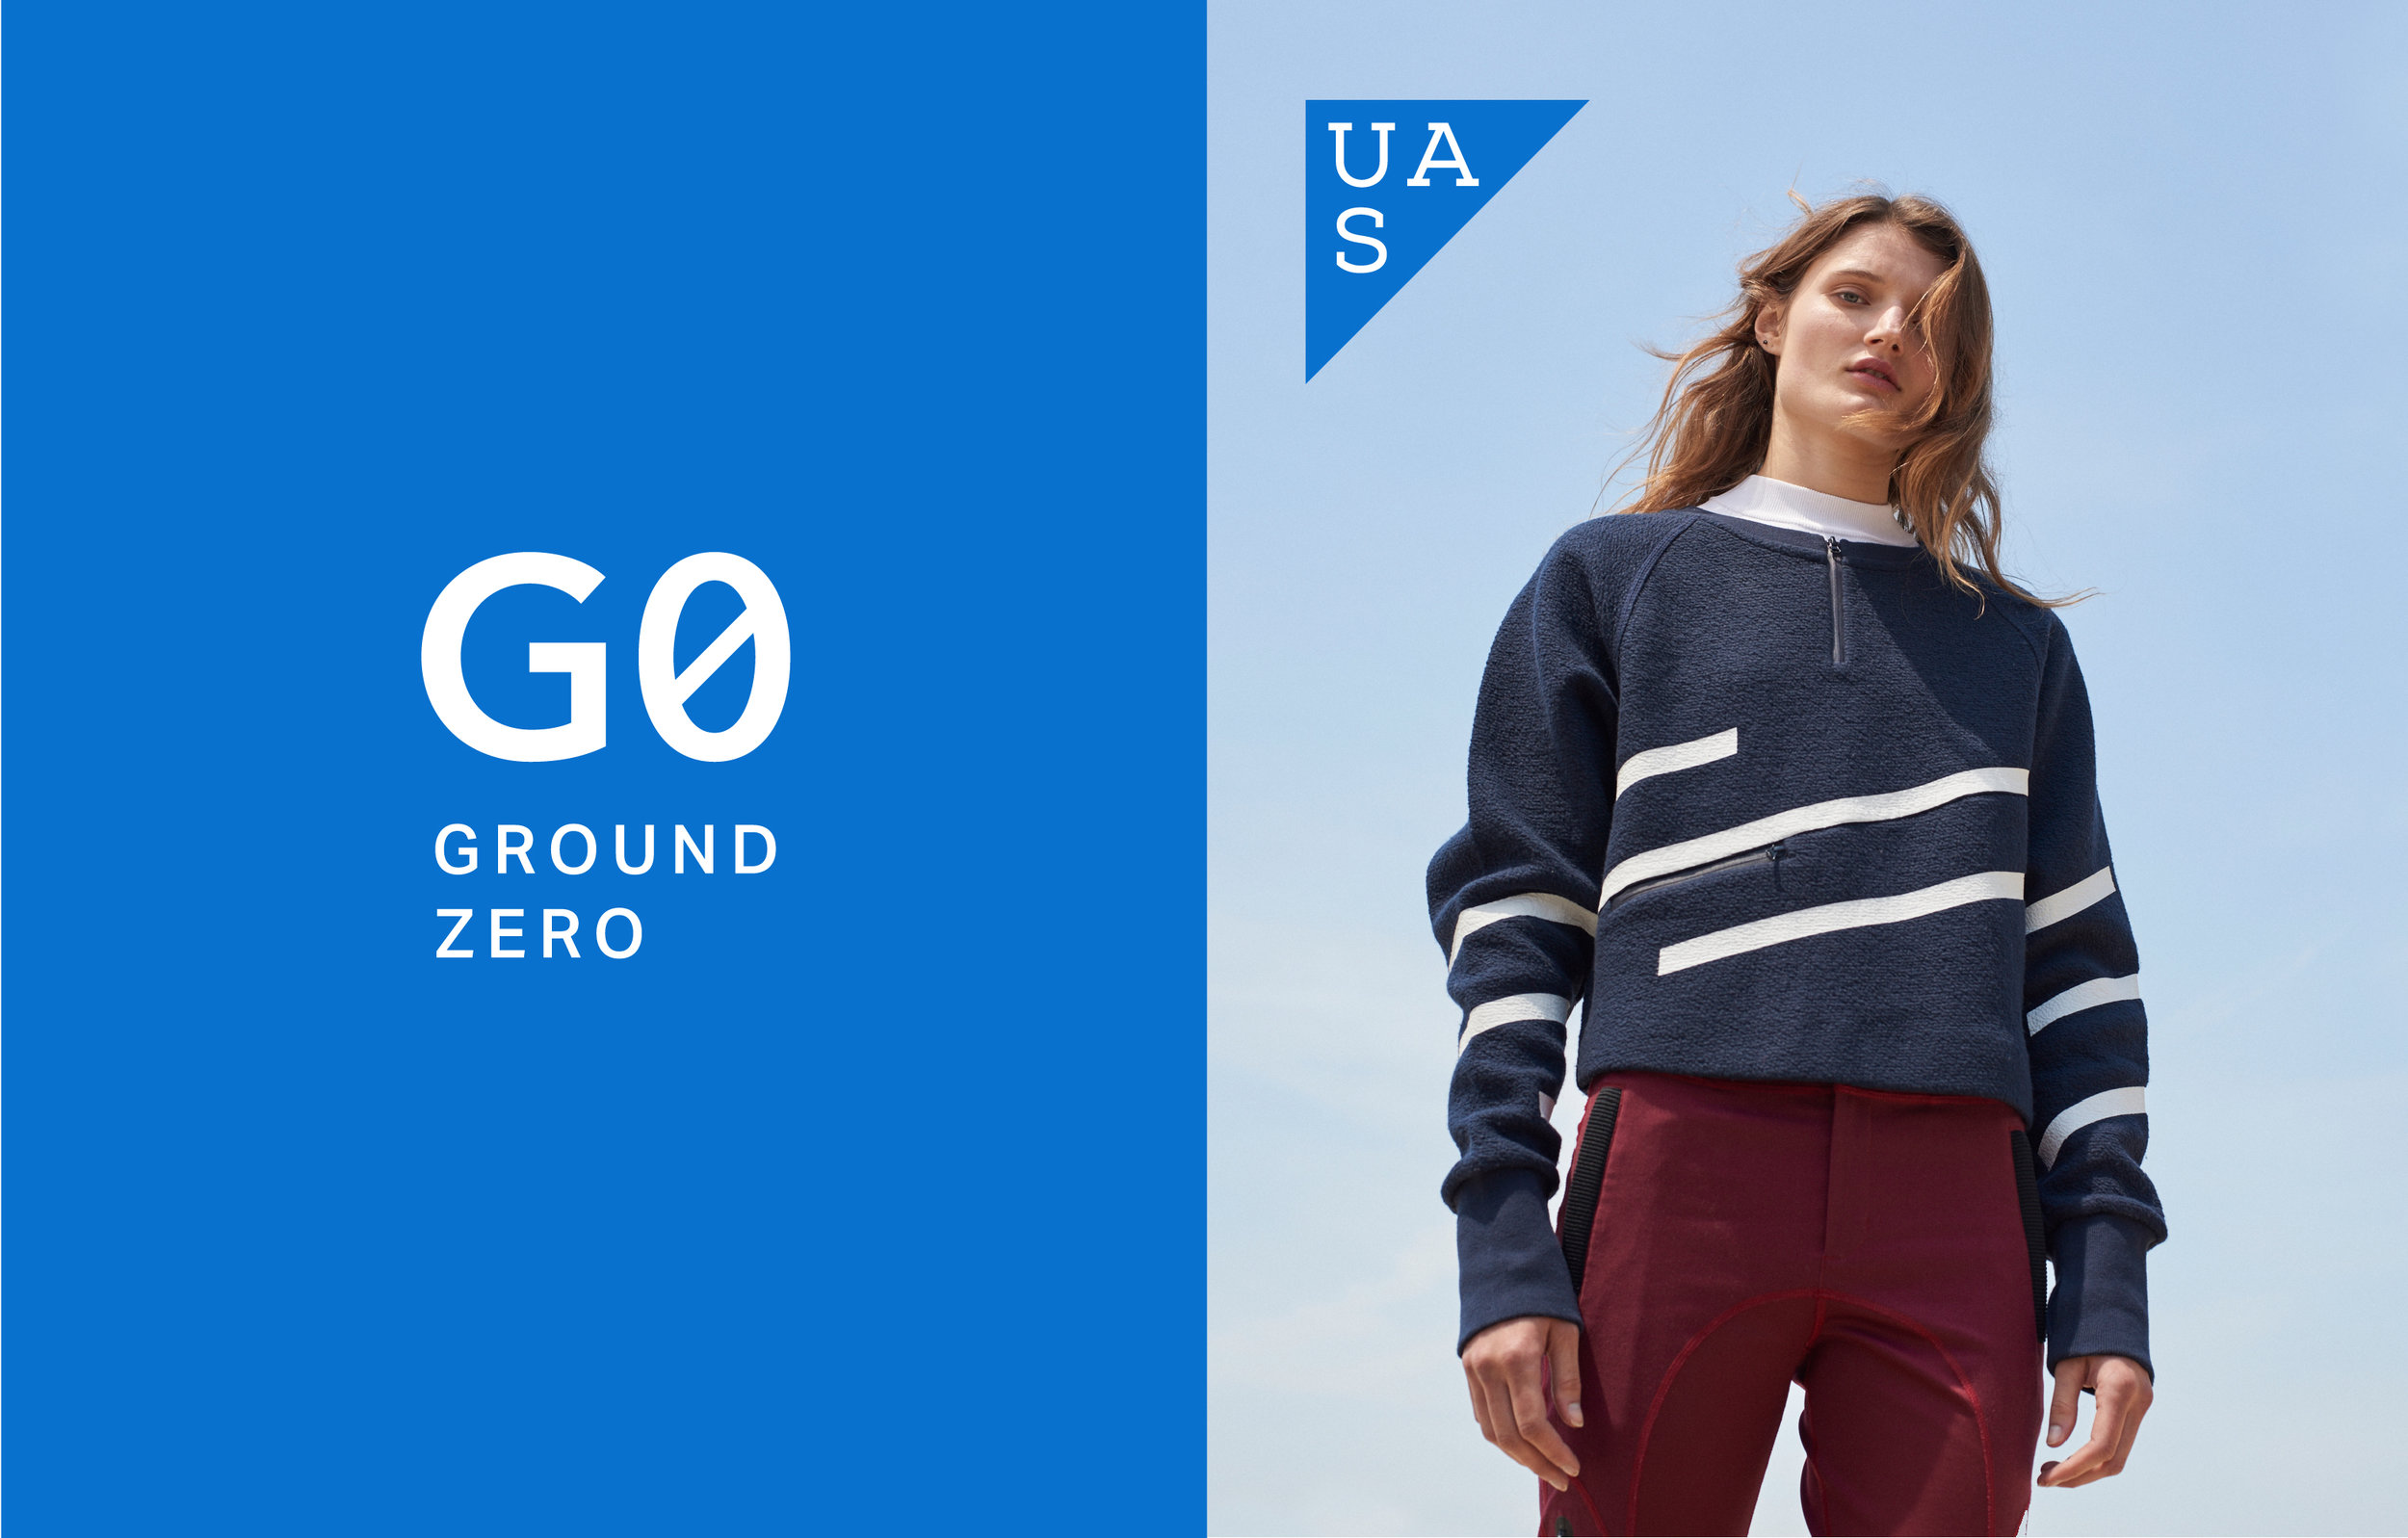 Launching Under Armour's first fashion lifestyle brand.